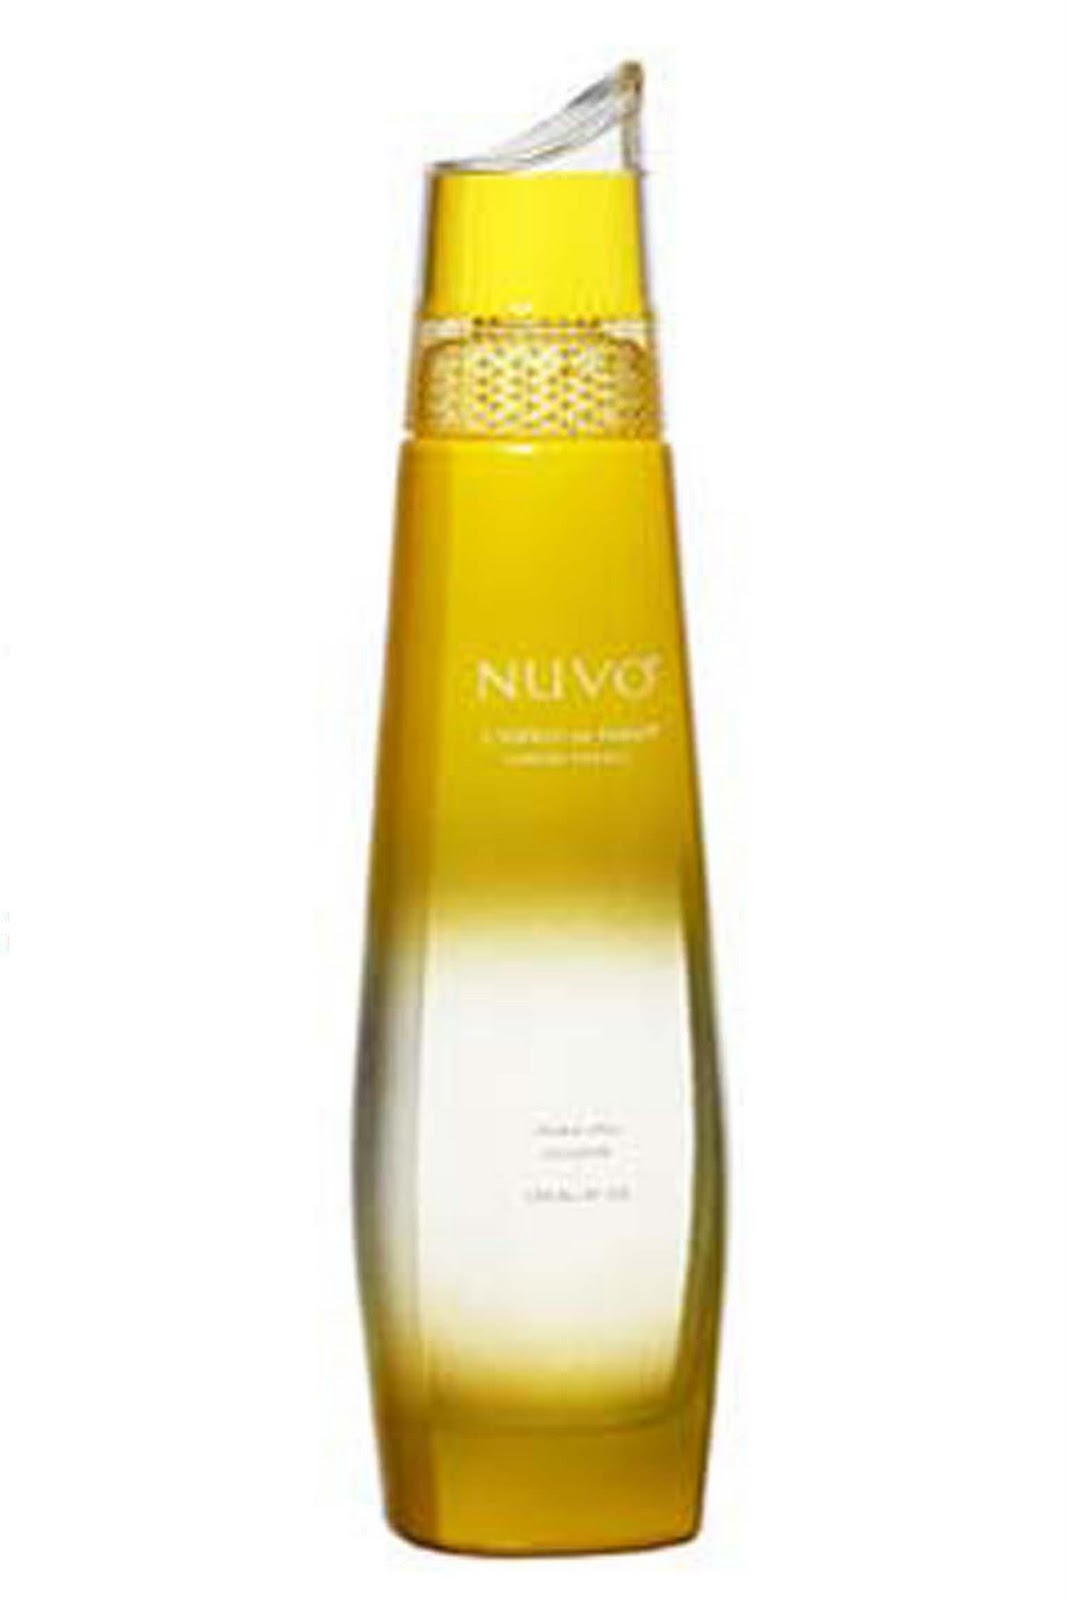 How Much Is Nuvo http://domosis.com/camaras/nuvo-alcohol